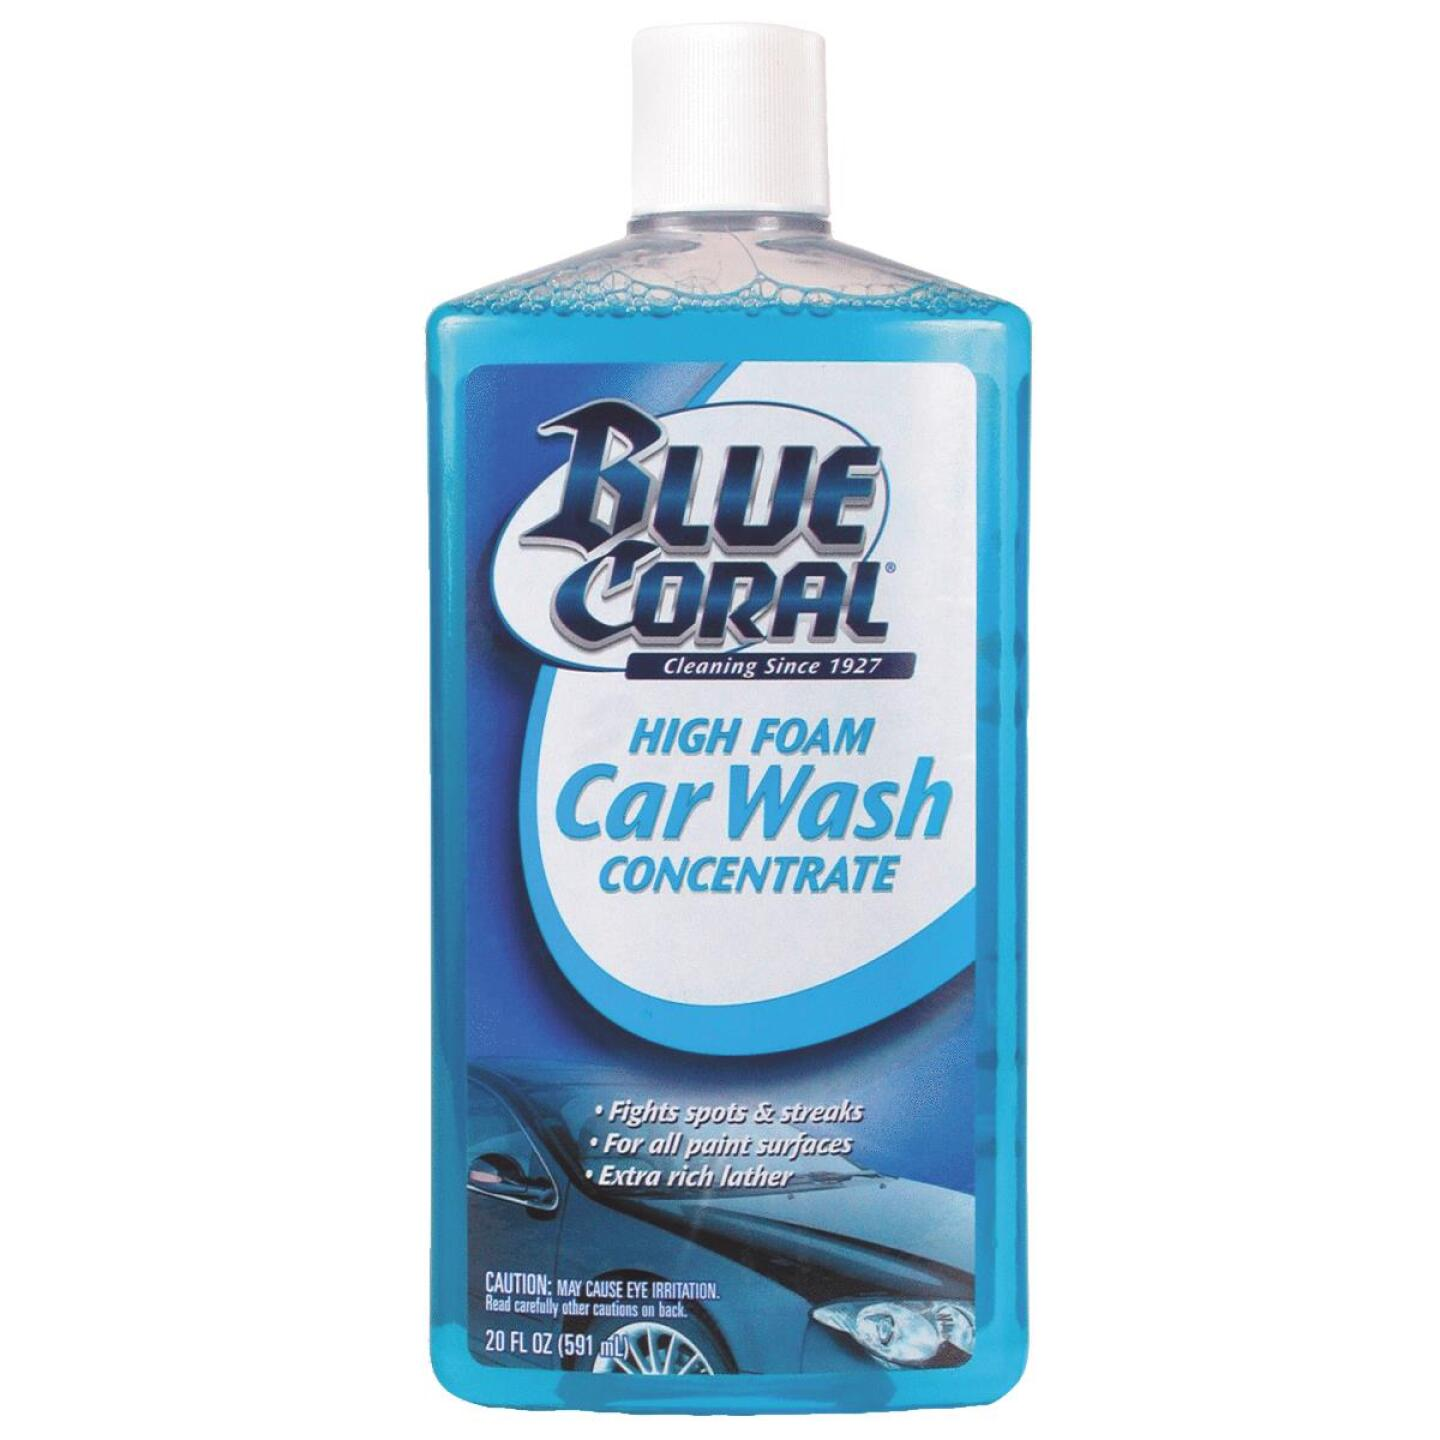 Blue Coral Liquid Concentrate 20 oz Car Wash Image 1